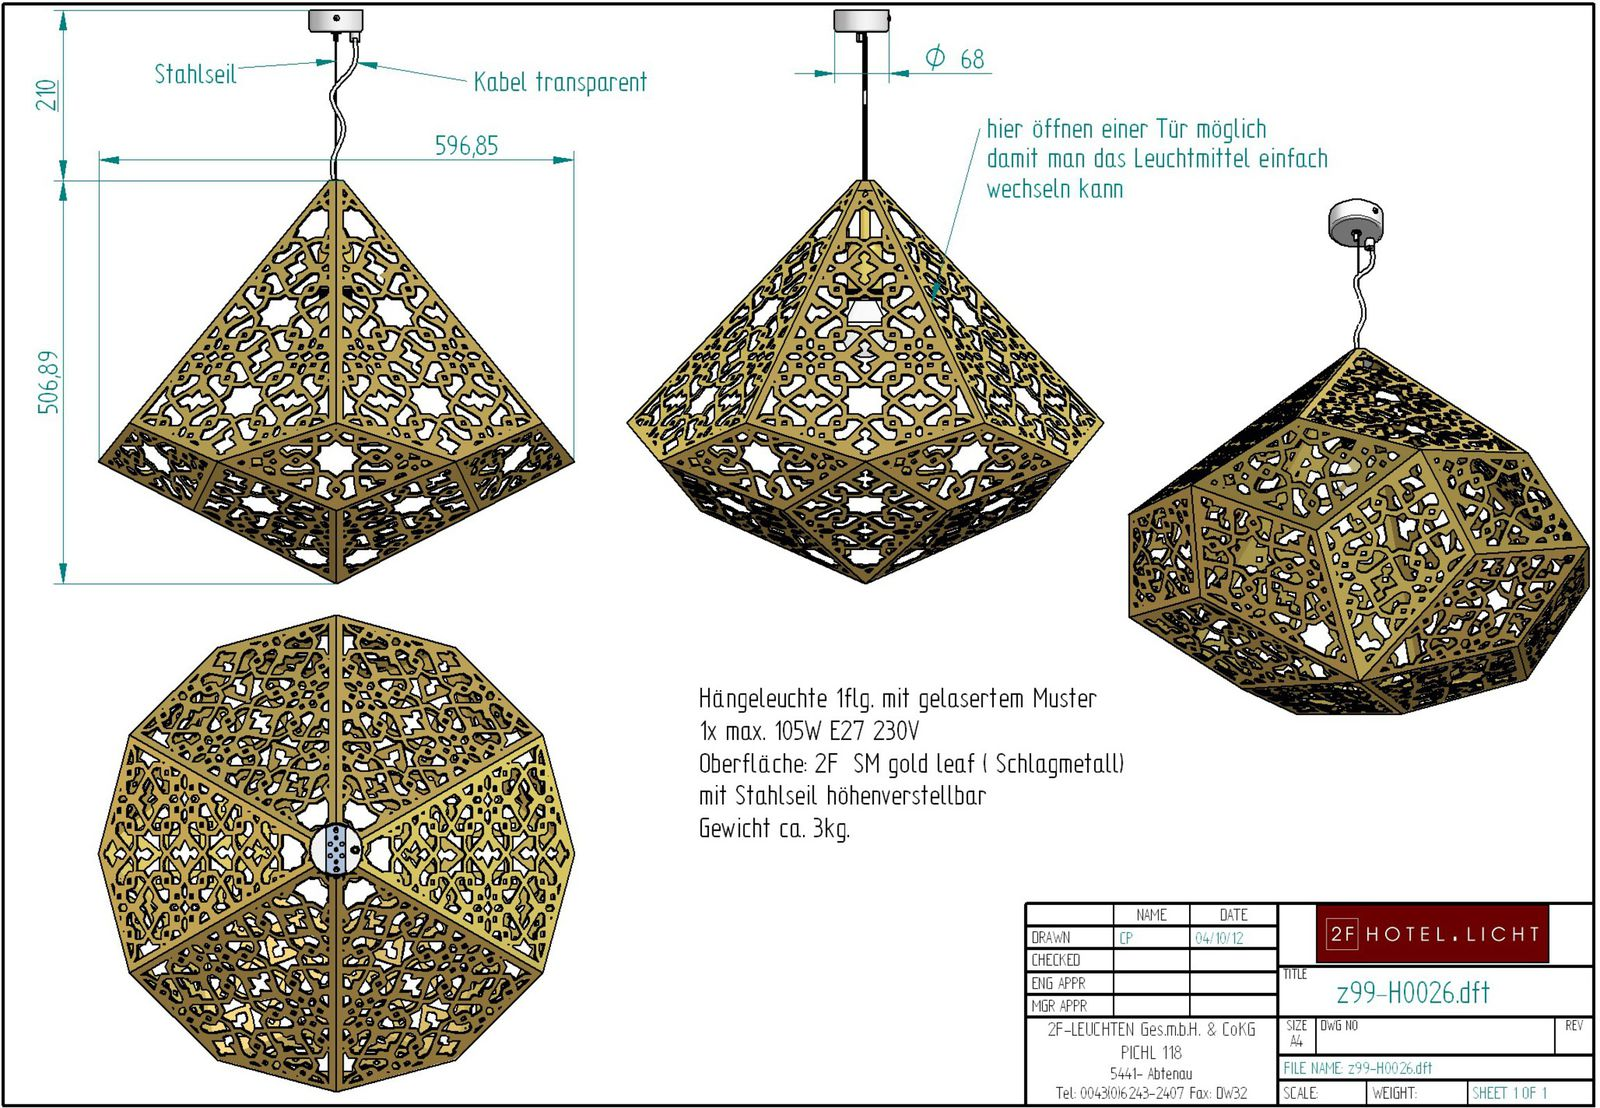 Pendant lamp, lenght= diameter=580mm, height=500mm, surface: gold leaf, techn. details: 1xE27, max. 105W, 230V